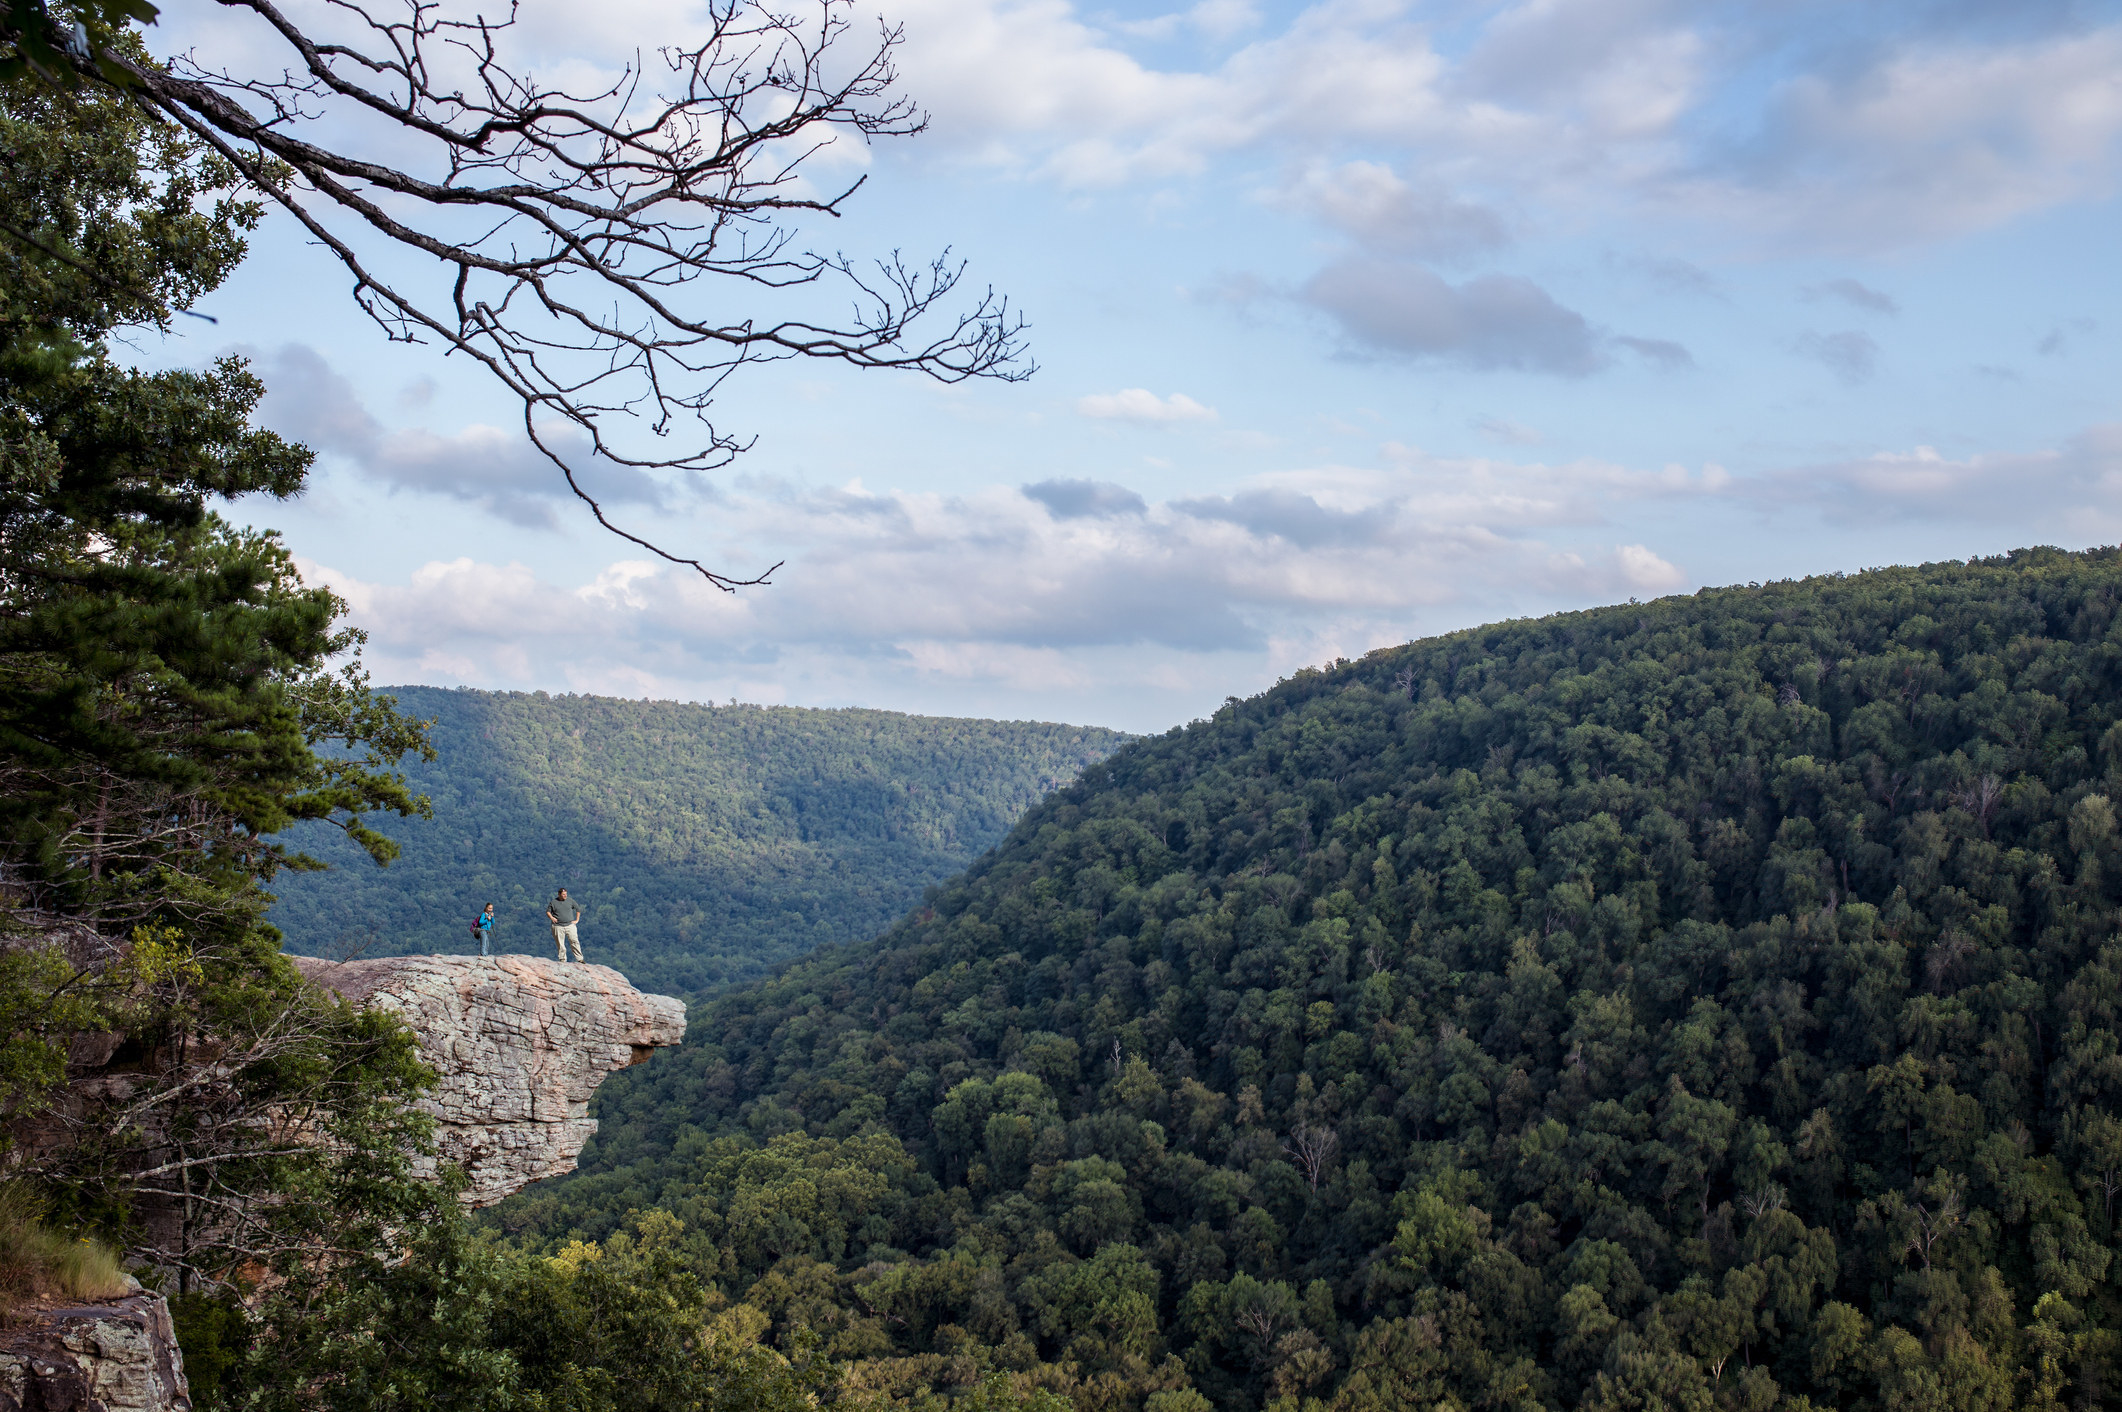 Two hikers stop to take in the view at Whitaker Point